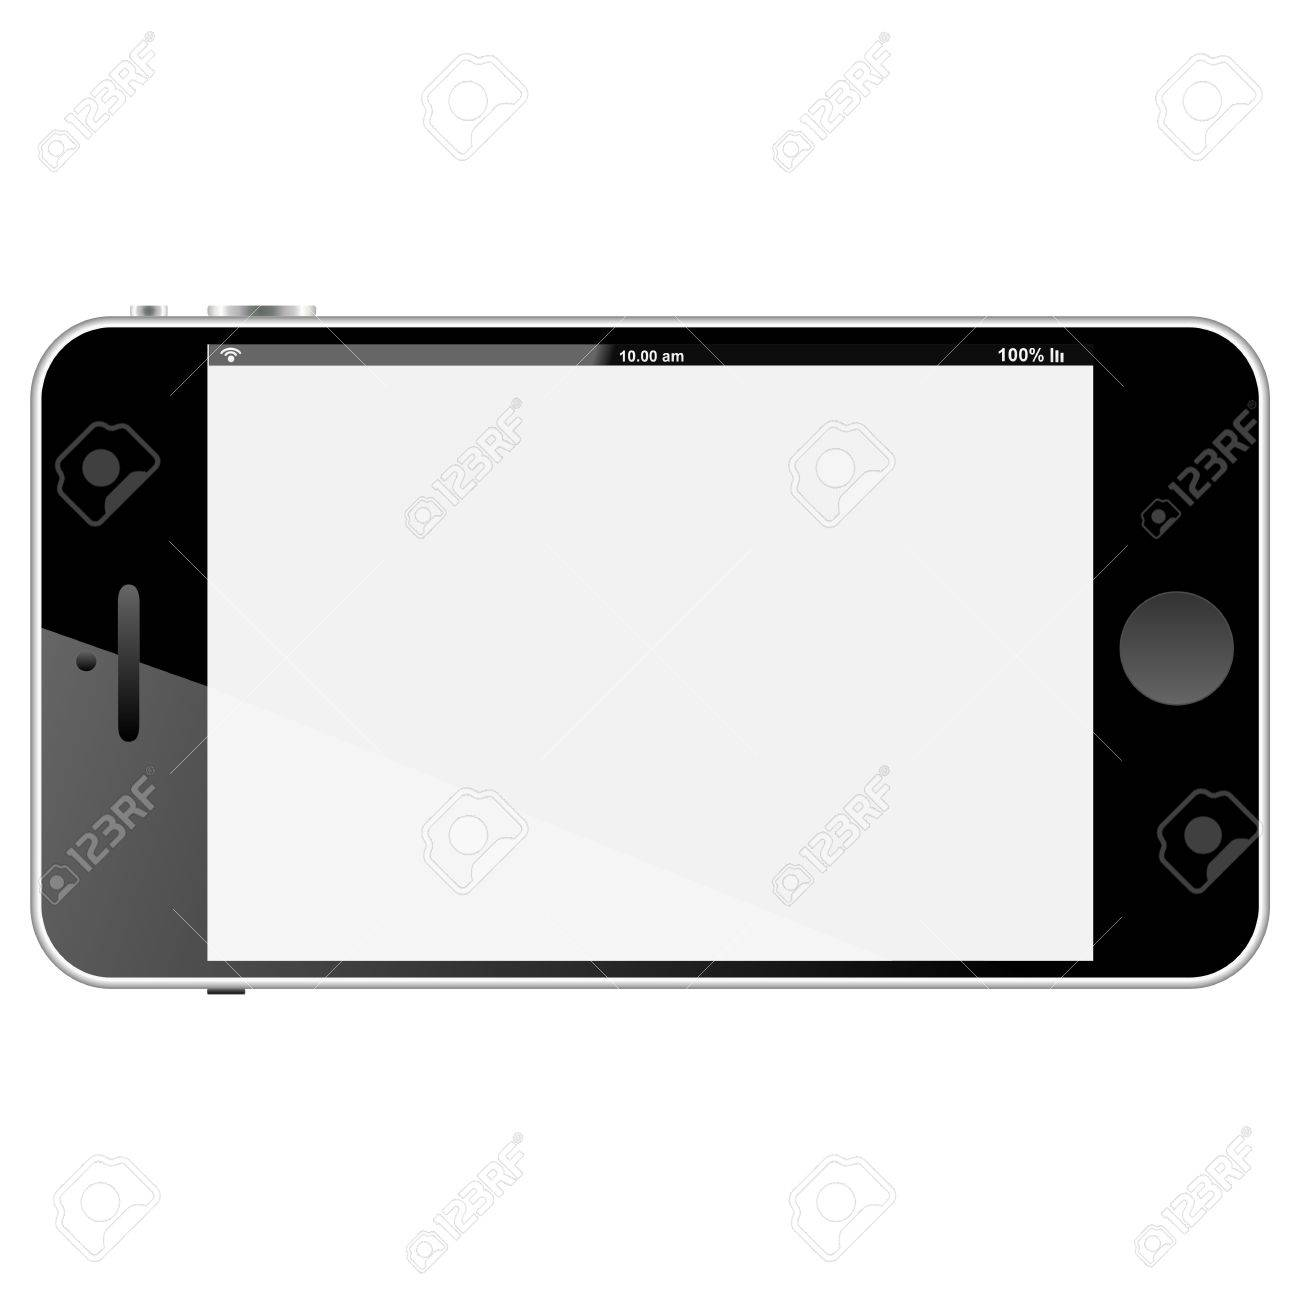 Brand New SMARTPHONE 5 Horizontal - Black Frame Stock Photo, Picture ...